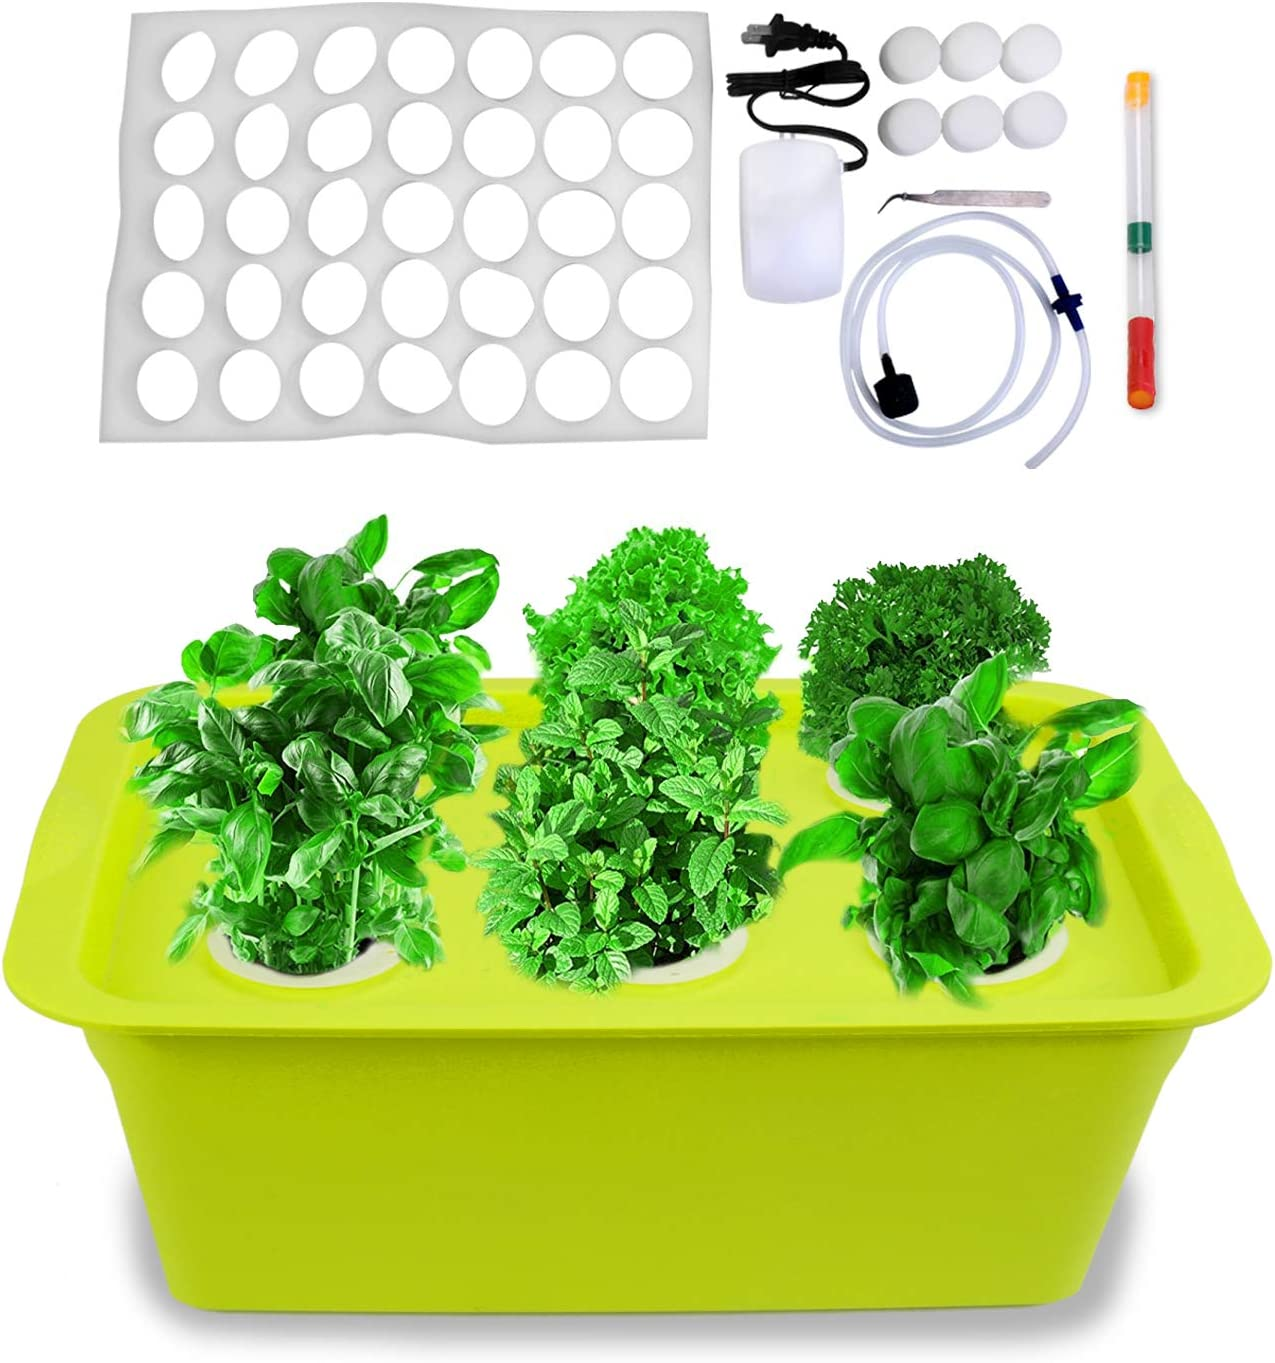 Freehawk Hydroponic System Growing Kit with Air Pump 6 Holes Soilless Cultivation Seeding Plant Grow Box Garden Cabinet Box for Herbs, Seeds, Lettuce, Vegetables